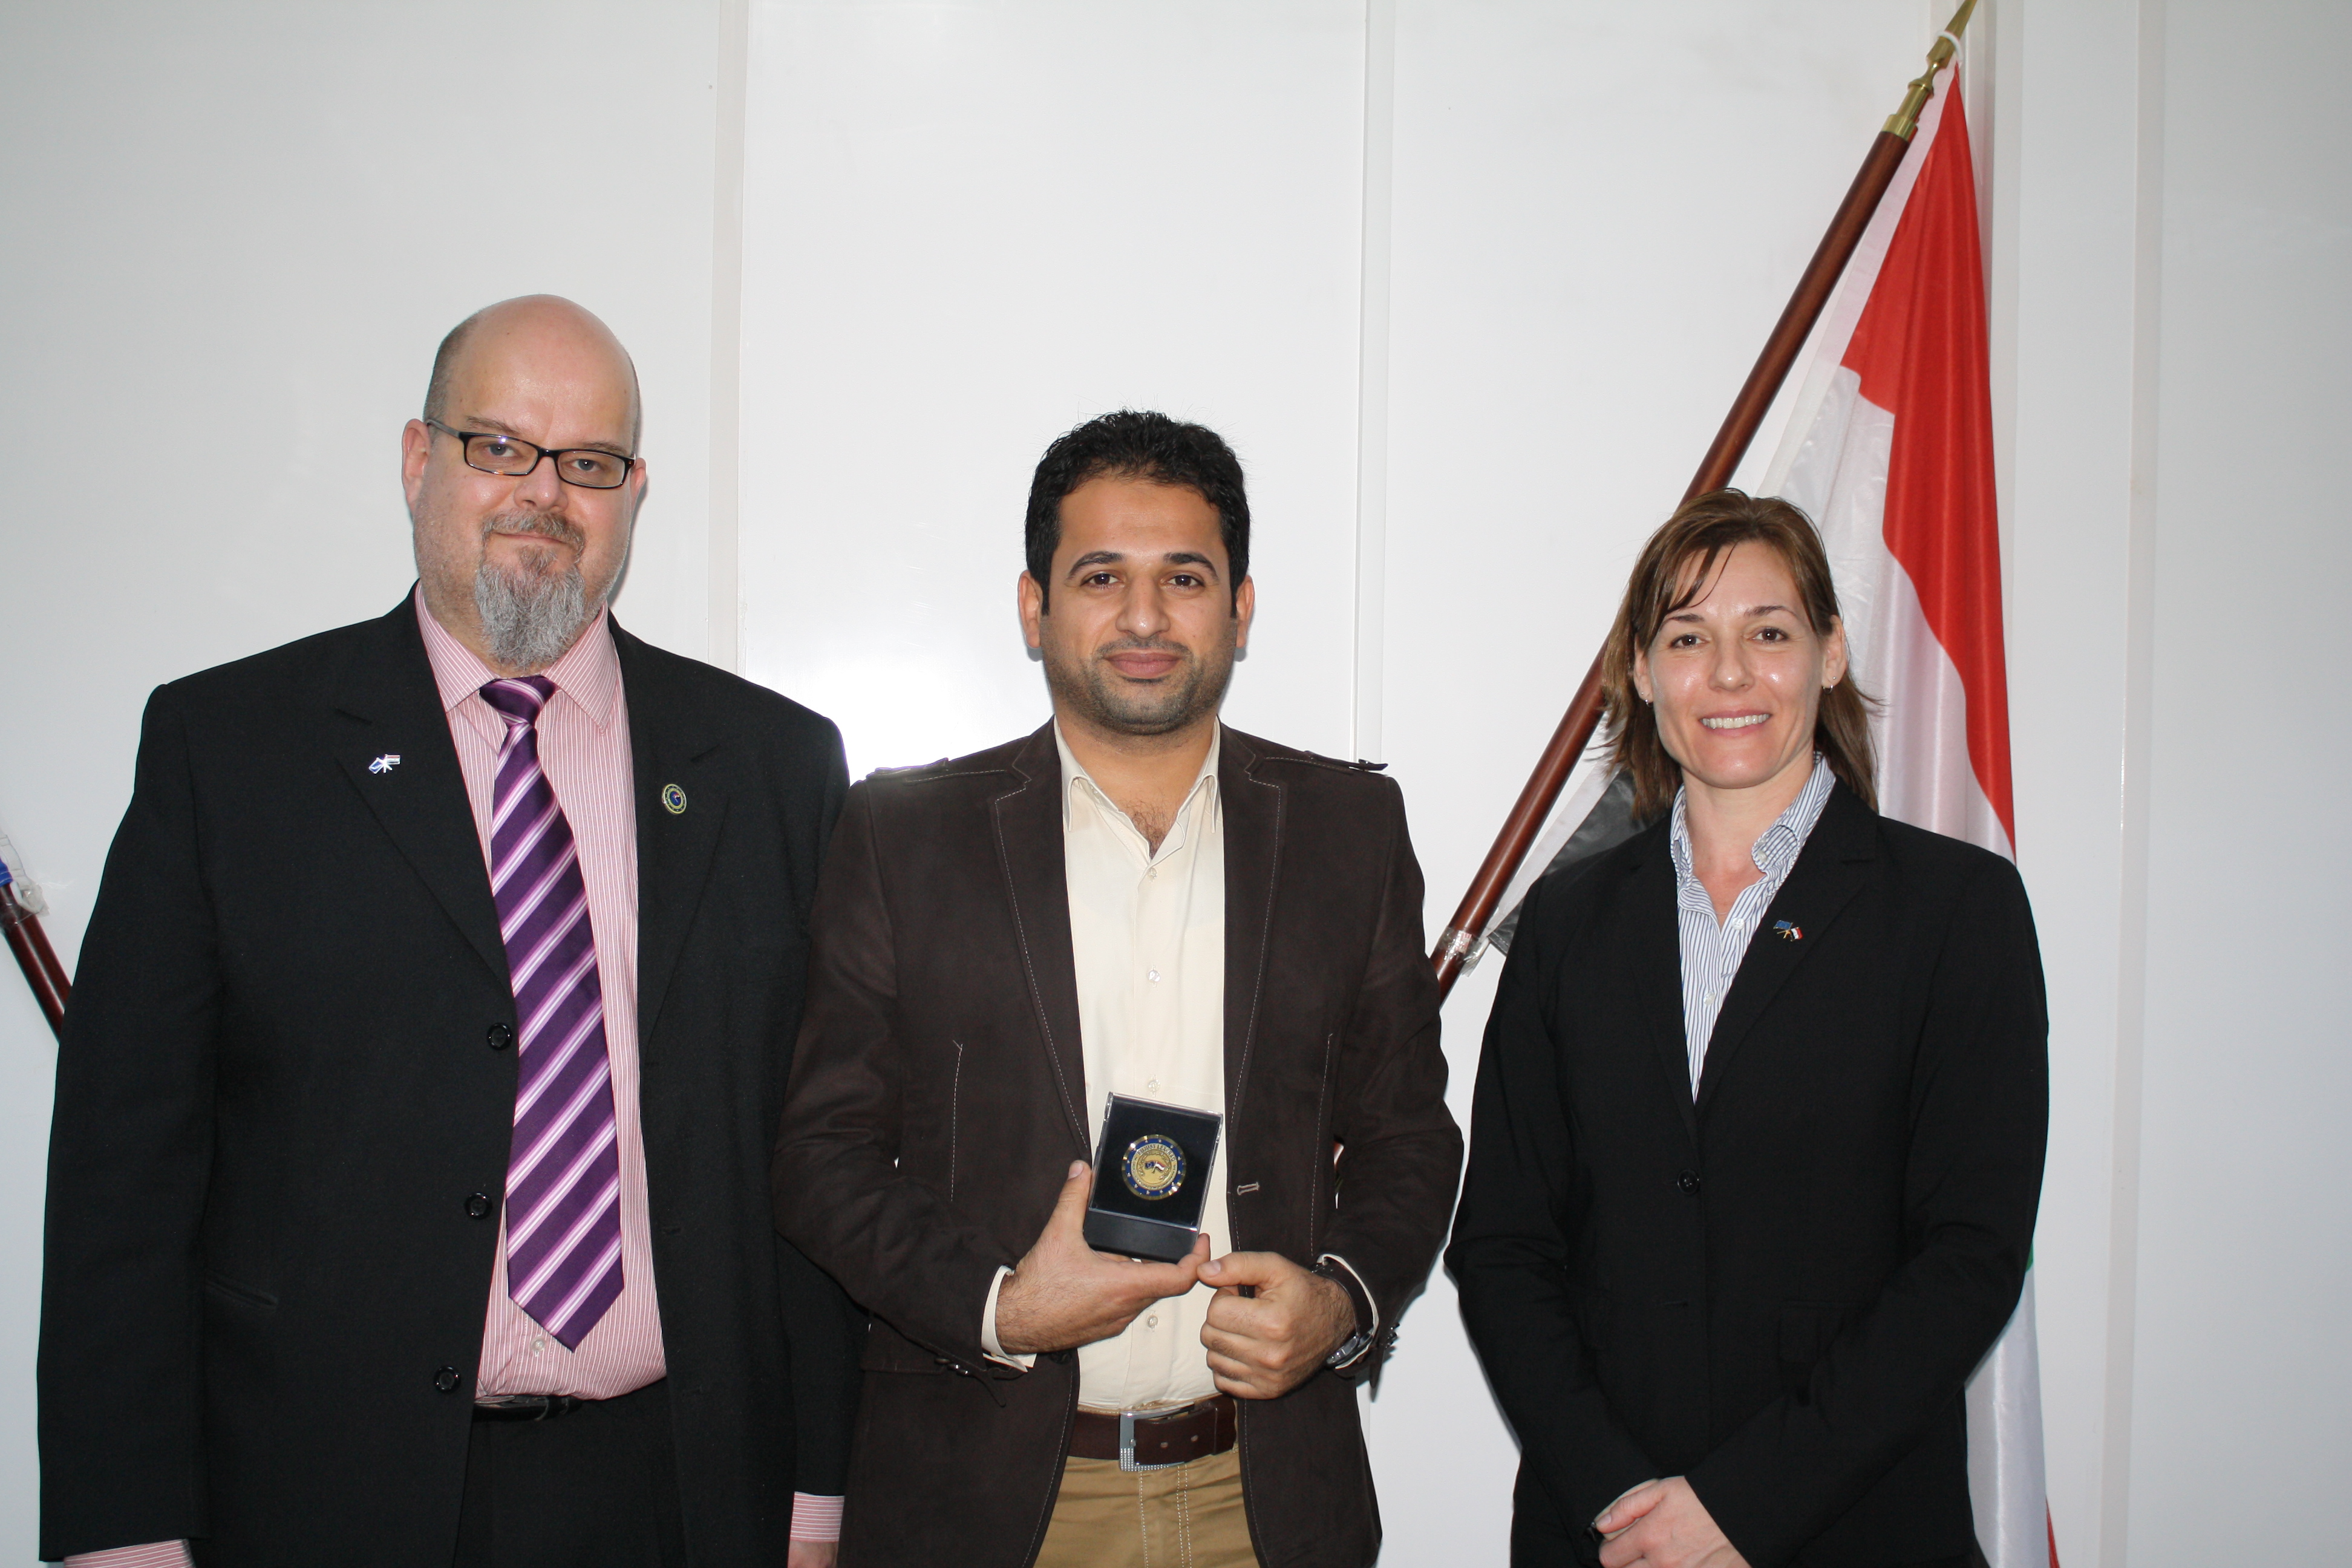 Haider Malik receiving a special coin for his first role as ISAP co-Trainer from Alison Stables. Matti Virkunnen looks on